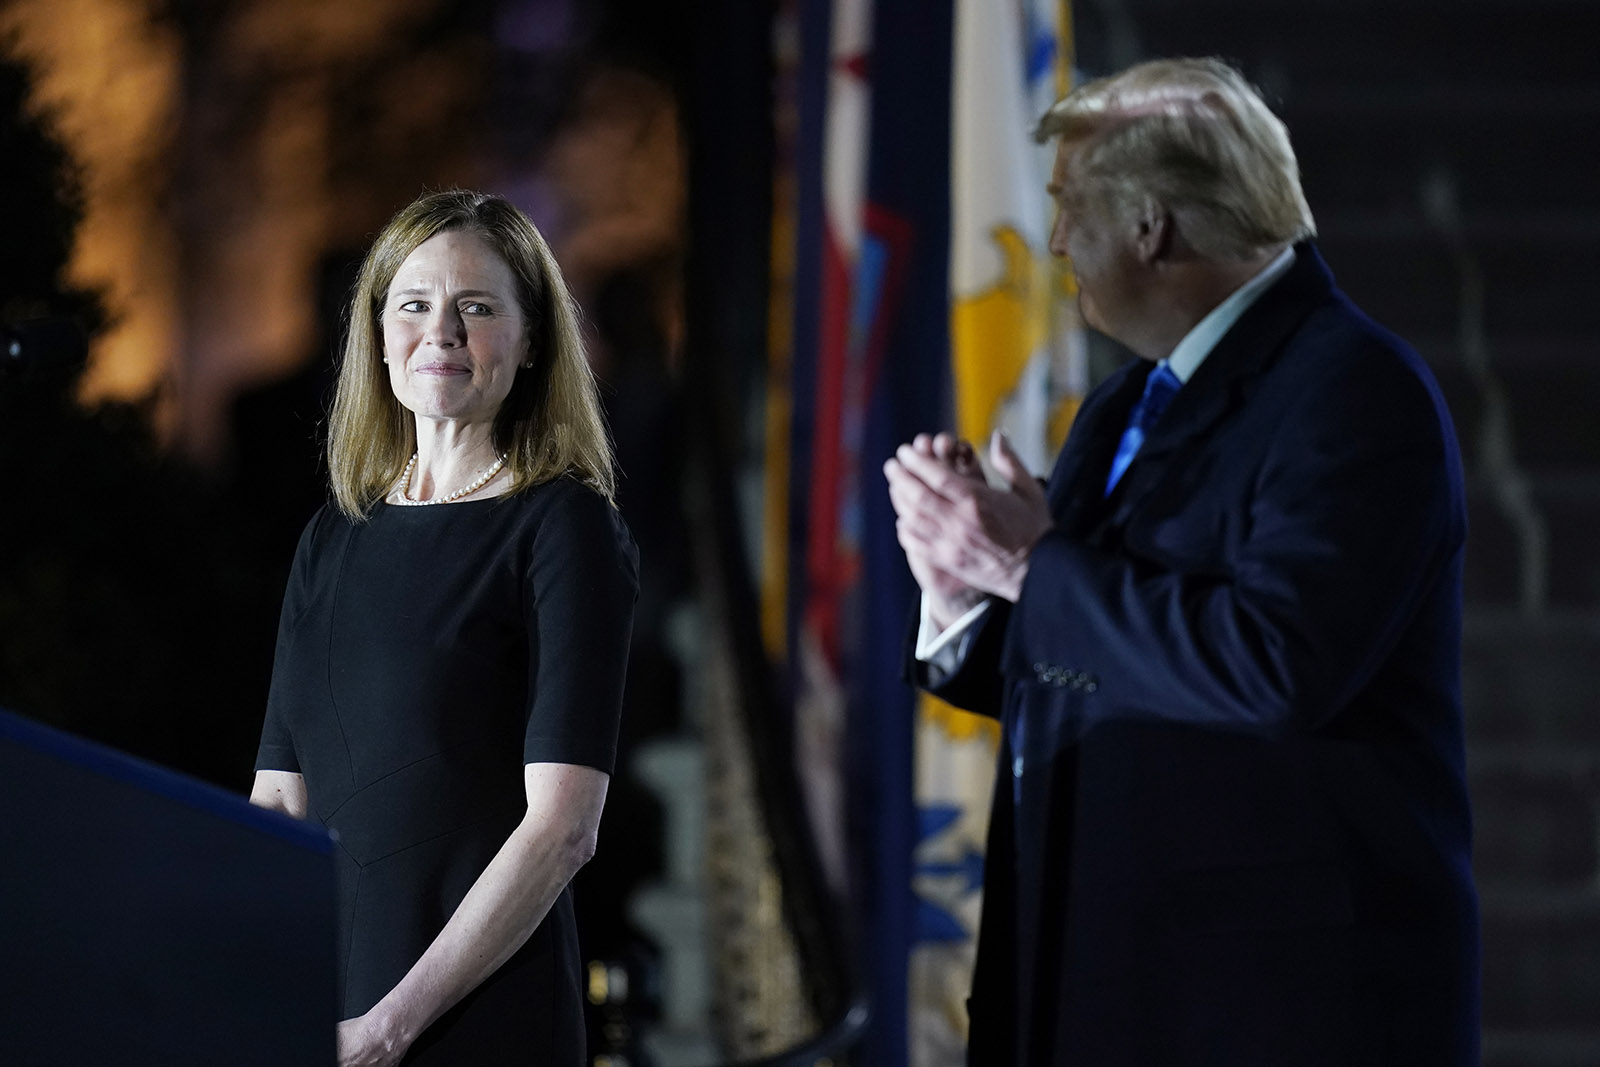 President Donald Trump looks toward Amy Coney Barrett, before Supreme Court Justice Clarence Thomas administers the Constitutional Oath to her on the South Lawn of the White House in Washington, on Monday.